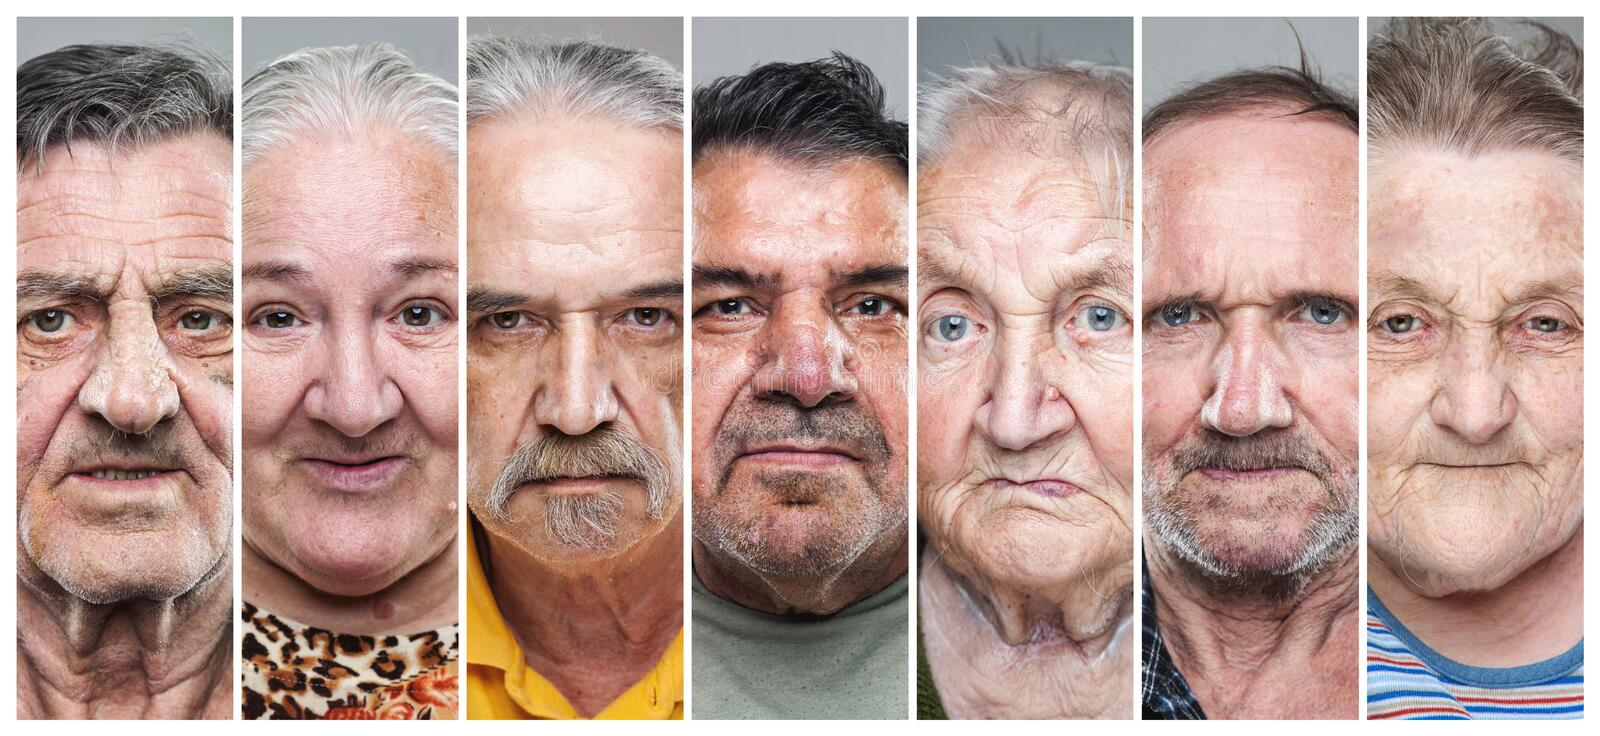 Closeup portrait collage of elderly men and women. Portrait collage of elderly men and women with various facial expressions stock image